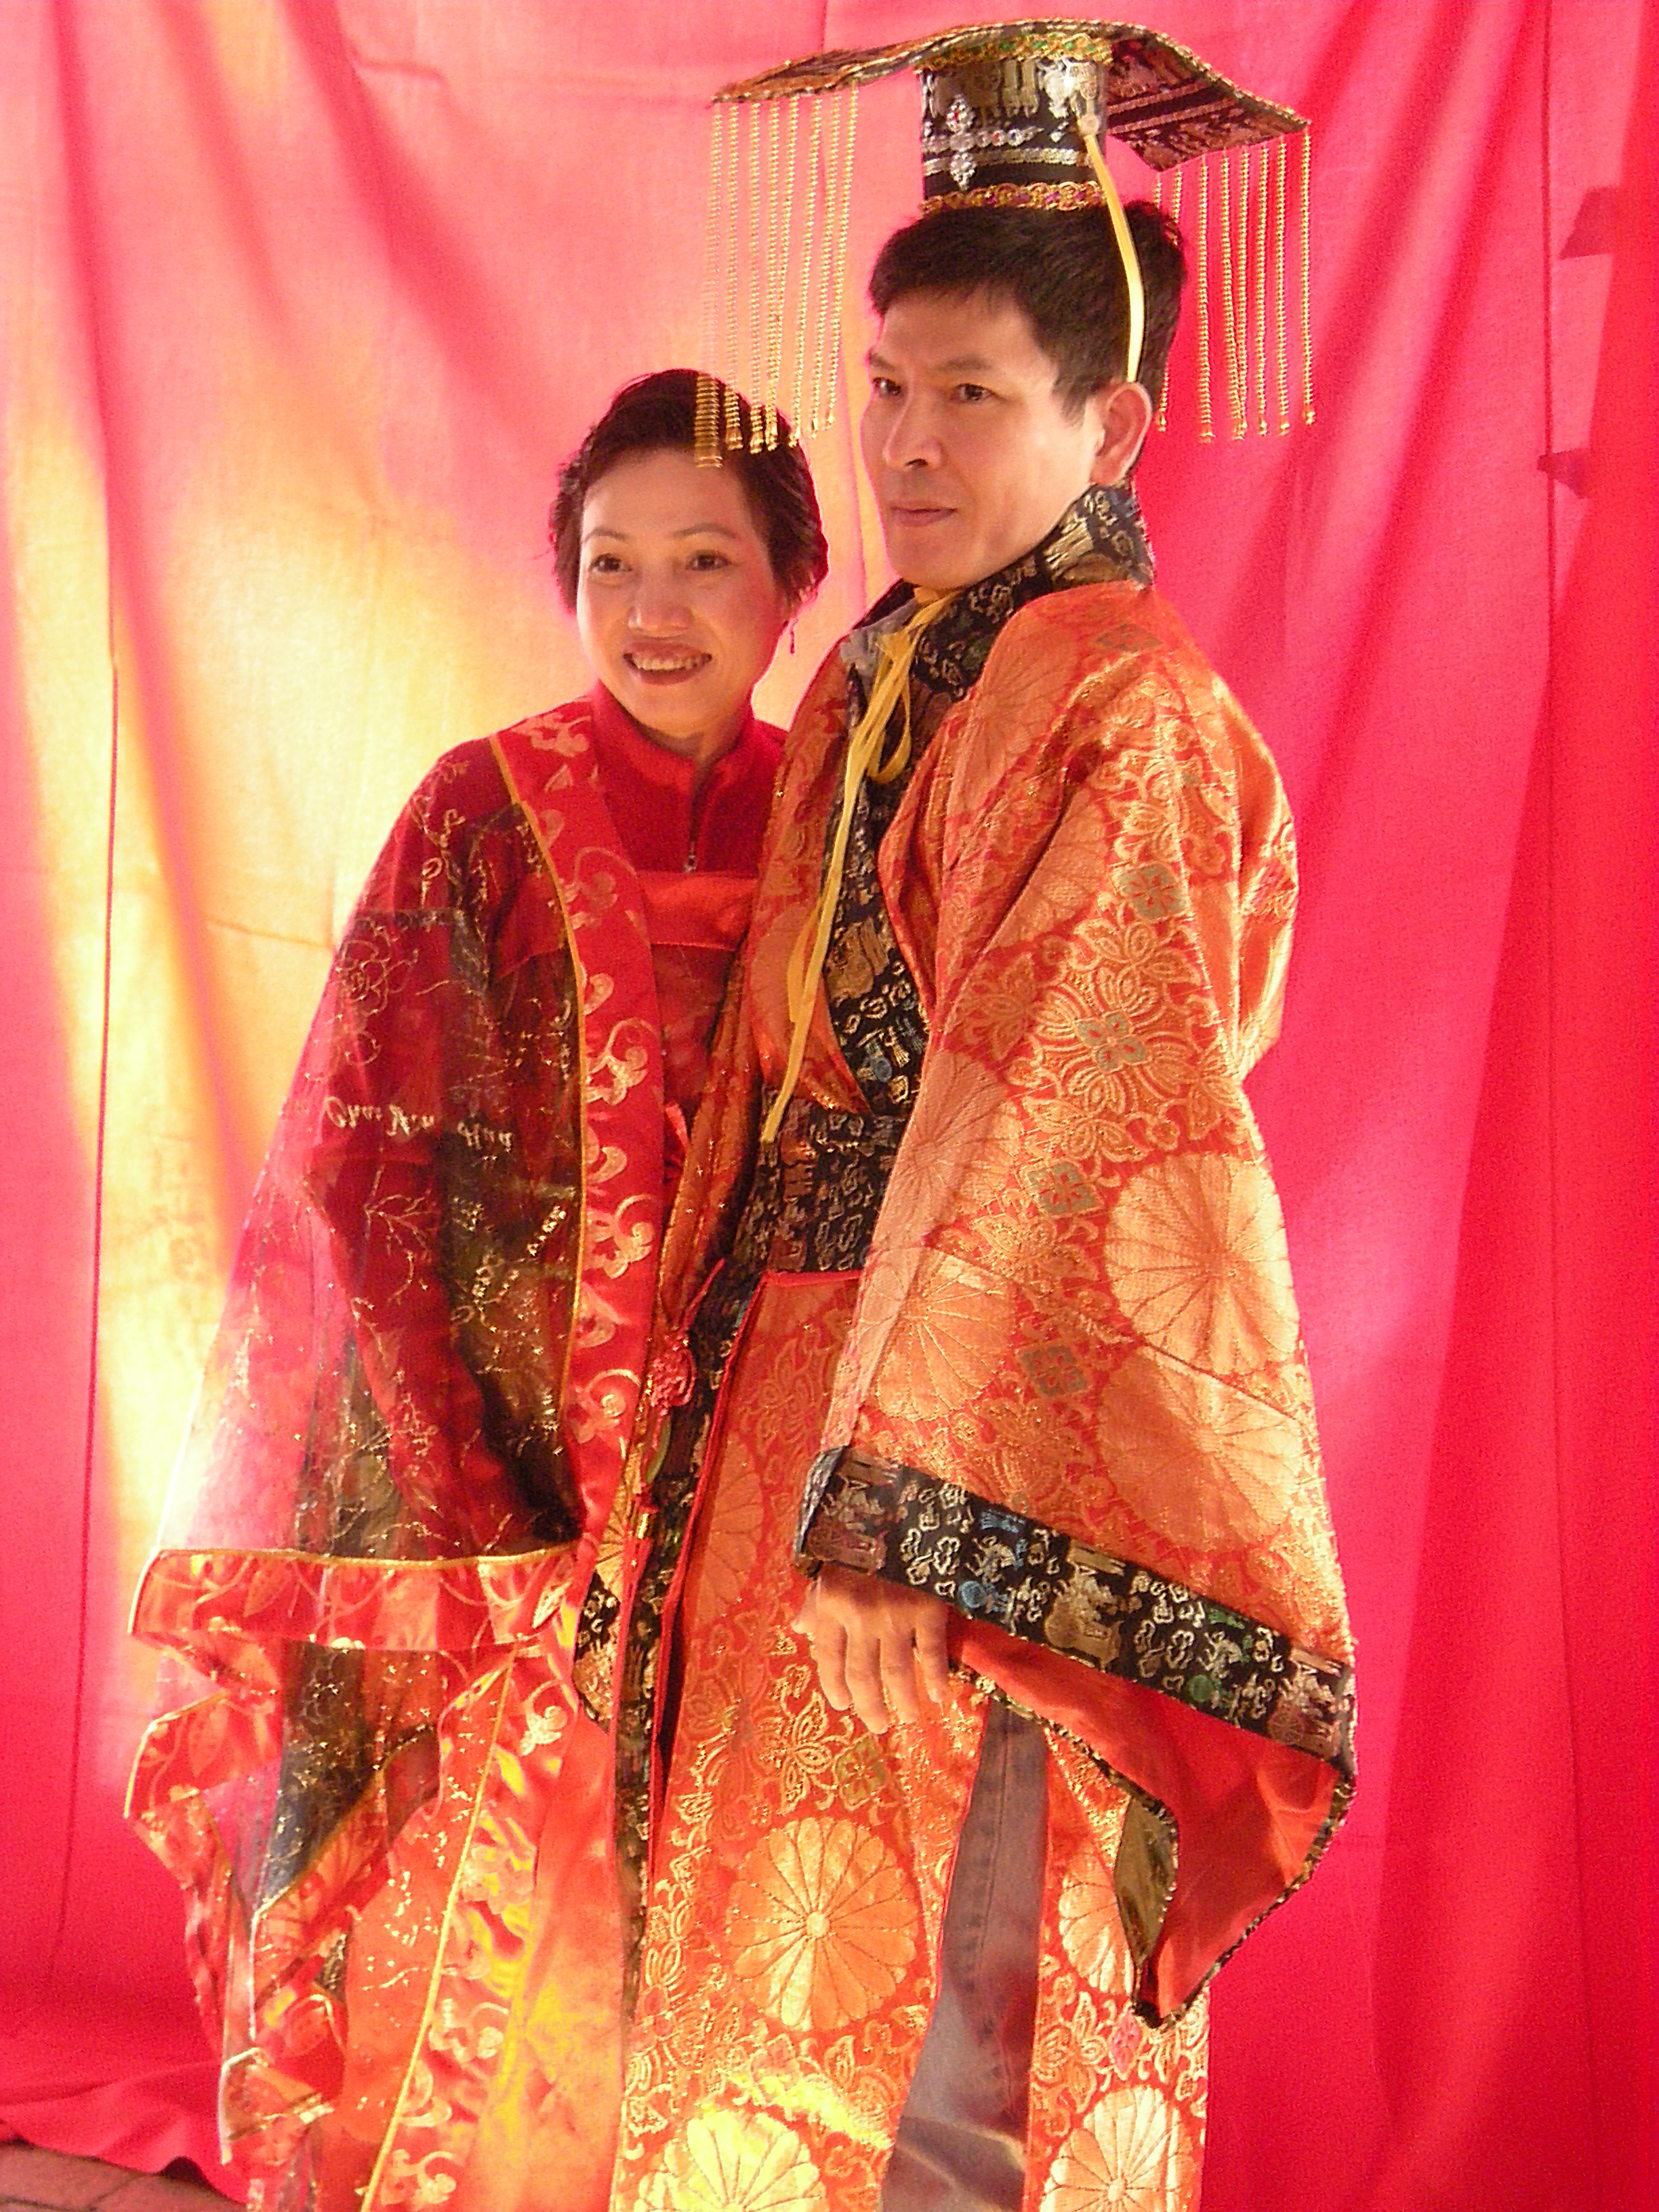 filechinese new year seattle 2009 couple in traditional